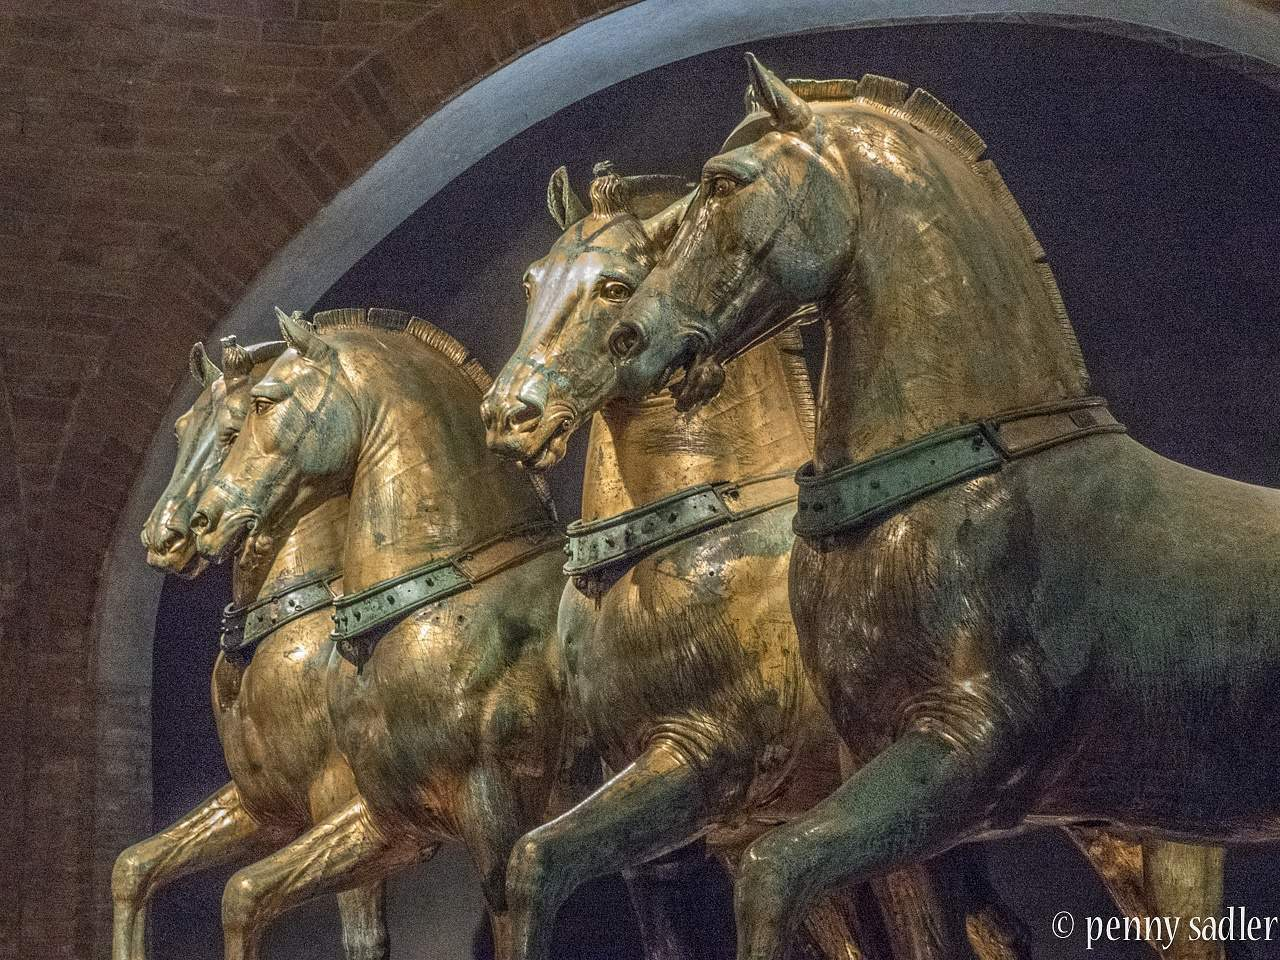 A side view of the four bronze horses of St Marks Basilica.